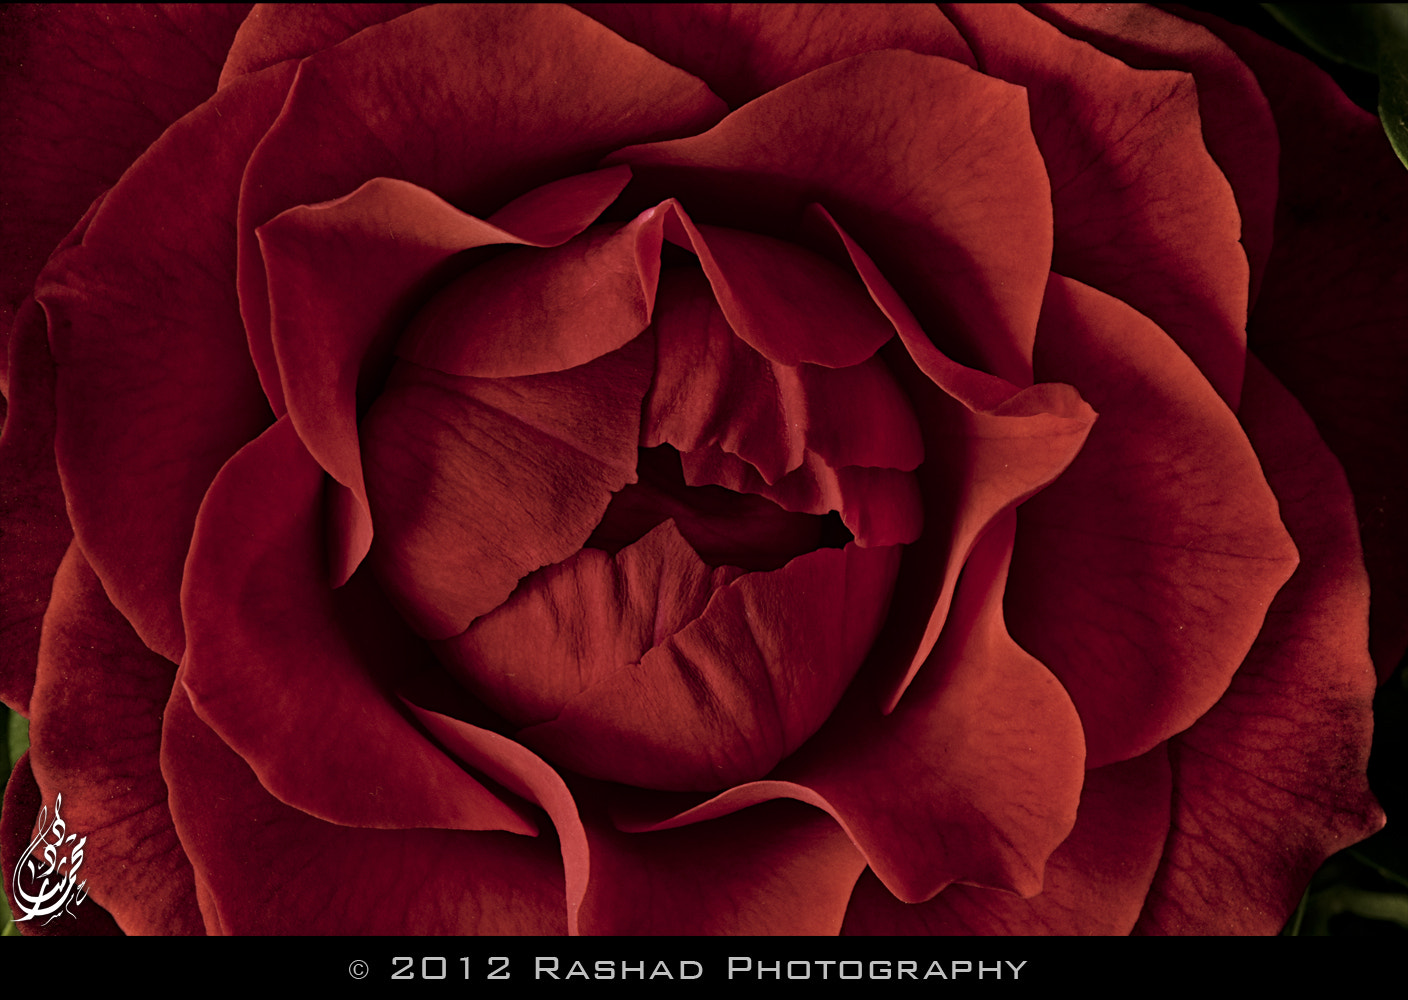 Photograph Dark Rose by Mohammed Rashad on 500px